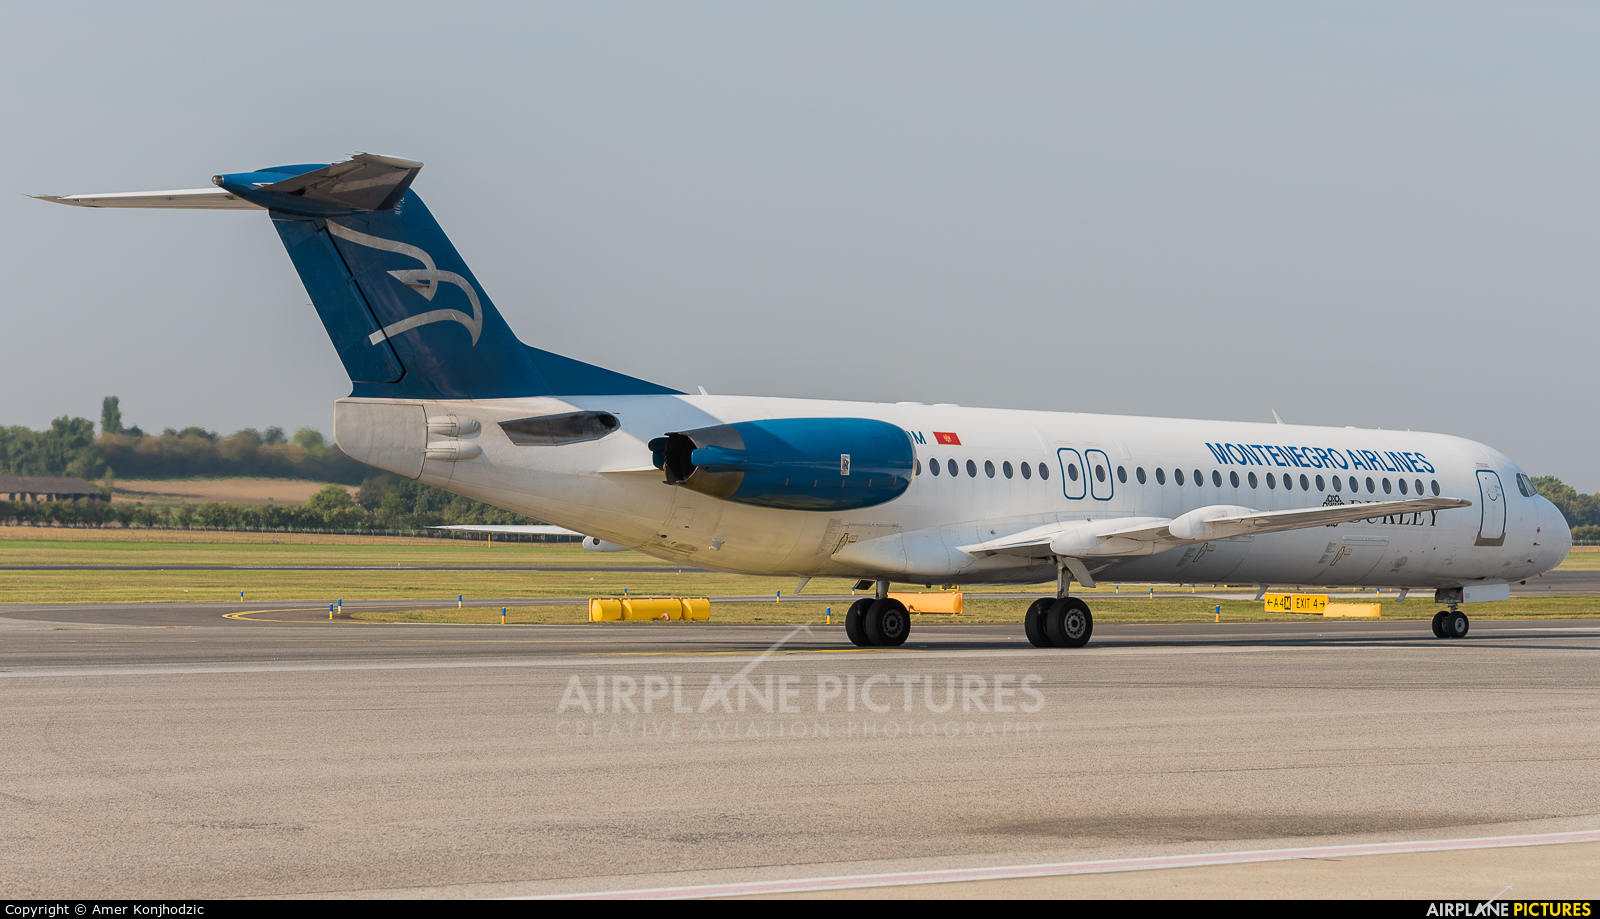 Montenegro Airlines 4O-AOM aircraft at Vienna - Schwechat